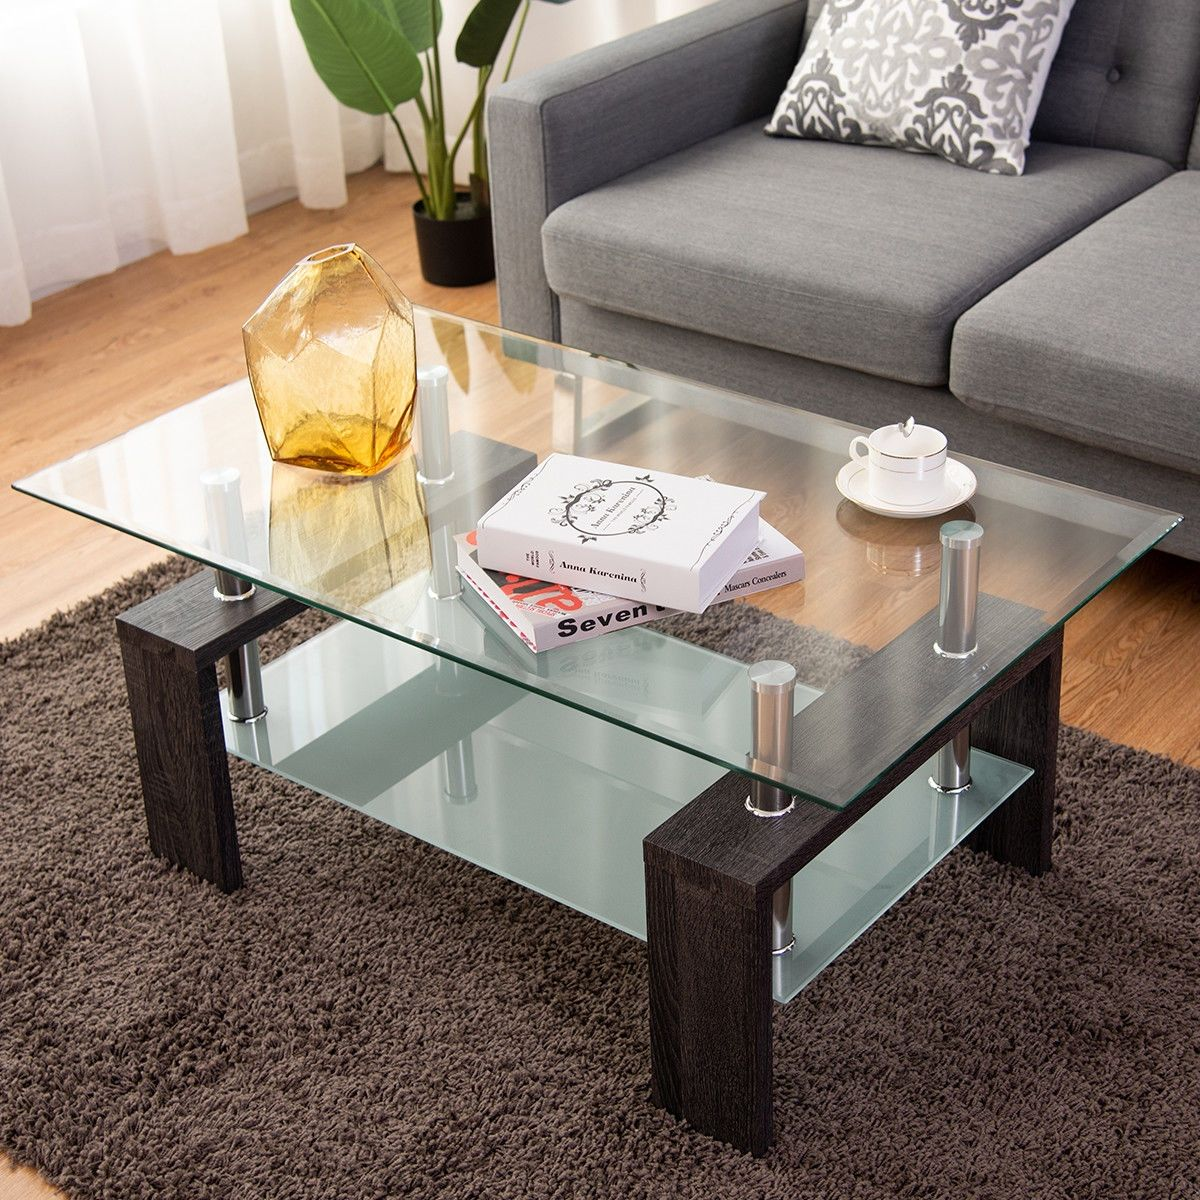 Rectangular Tempered Glass Coffee Table With Shelf Coffee Table Coffee Table With Shelf Coffee Table Rectangle [ 1200 x 1200 Pixel ]